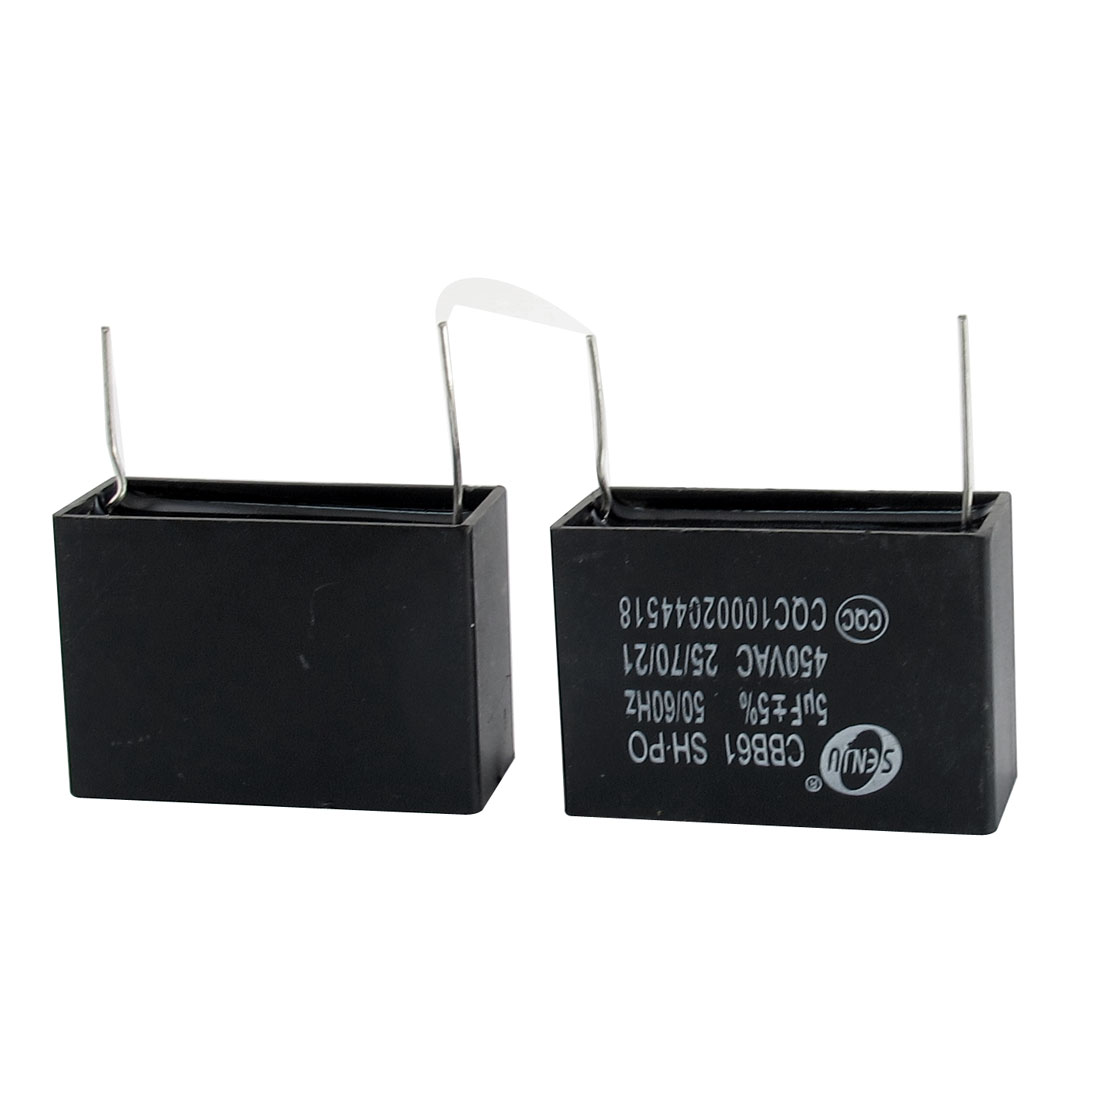 2 Pcs AC 450V 5uF 5% Tolerance 2 Pin Radial Lead Type Non Polar Polypropylene Film Air Condition Motor Running Capacitor Black